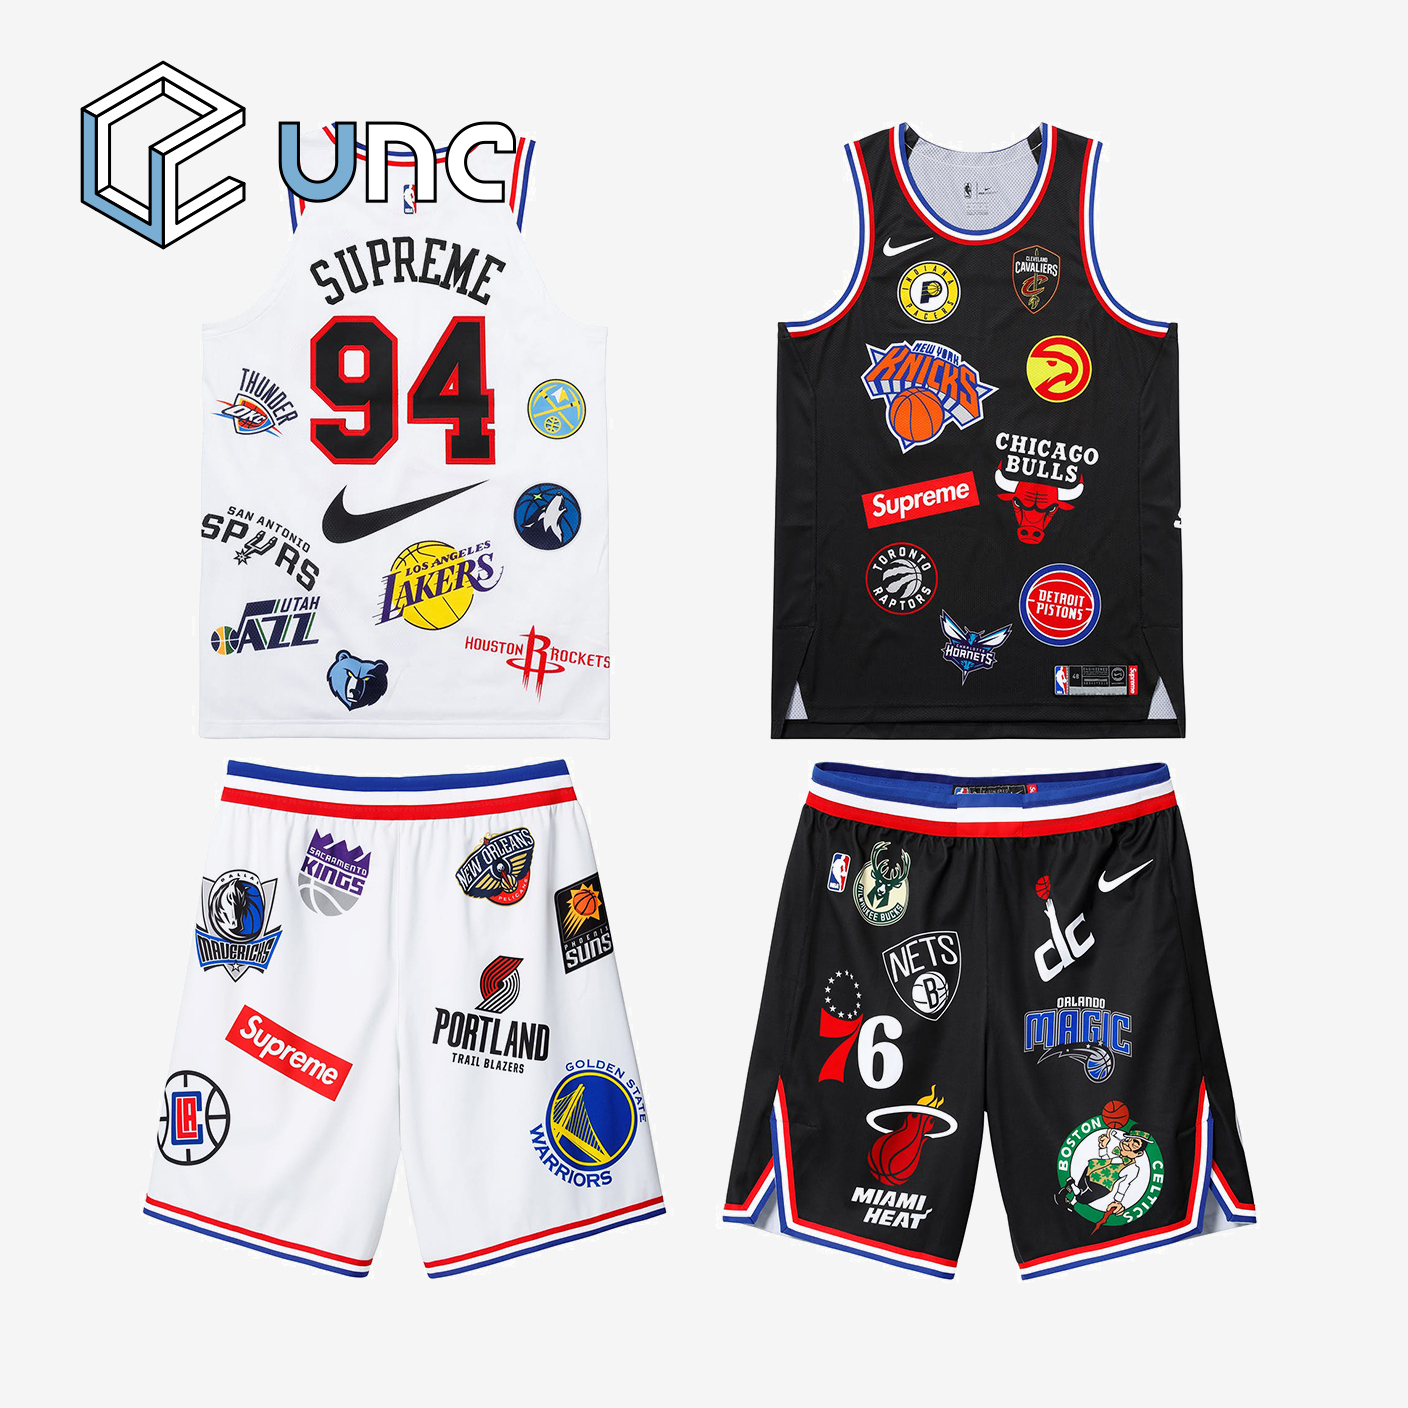 UNC Supreme 18SS Nike NBA Teams 球衣 球裤 黑白